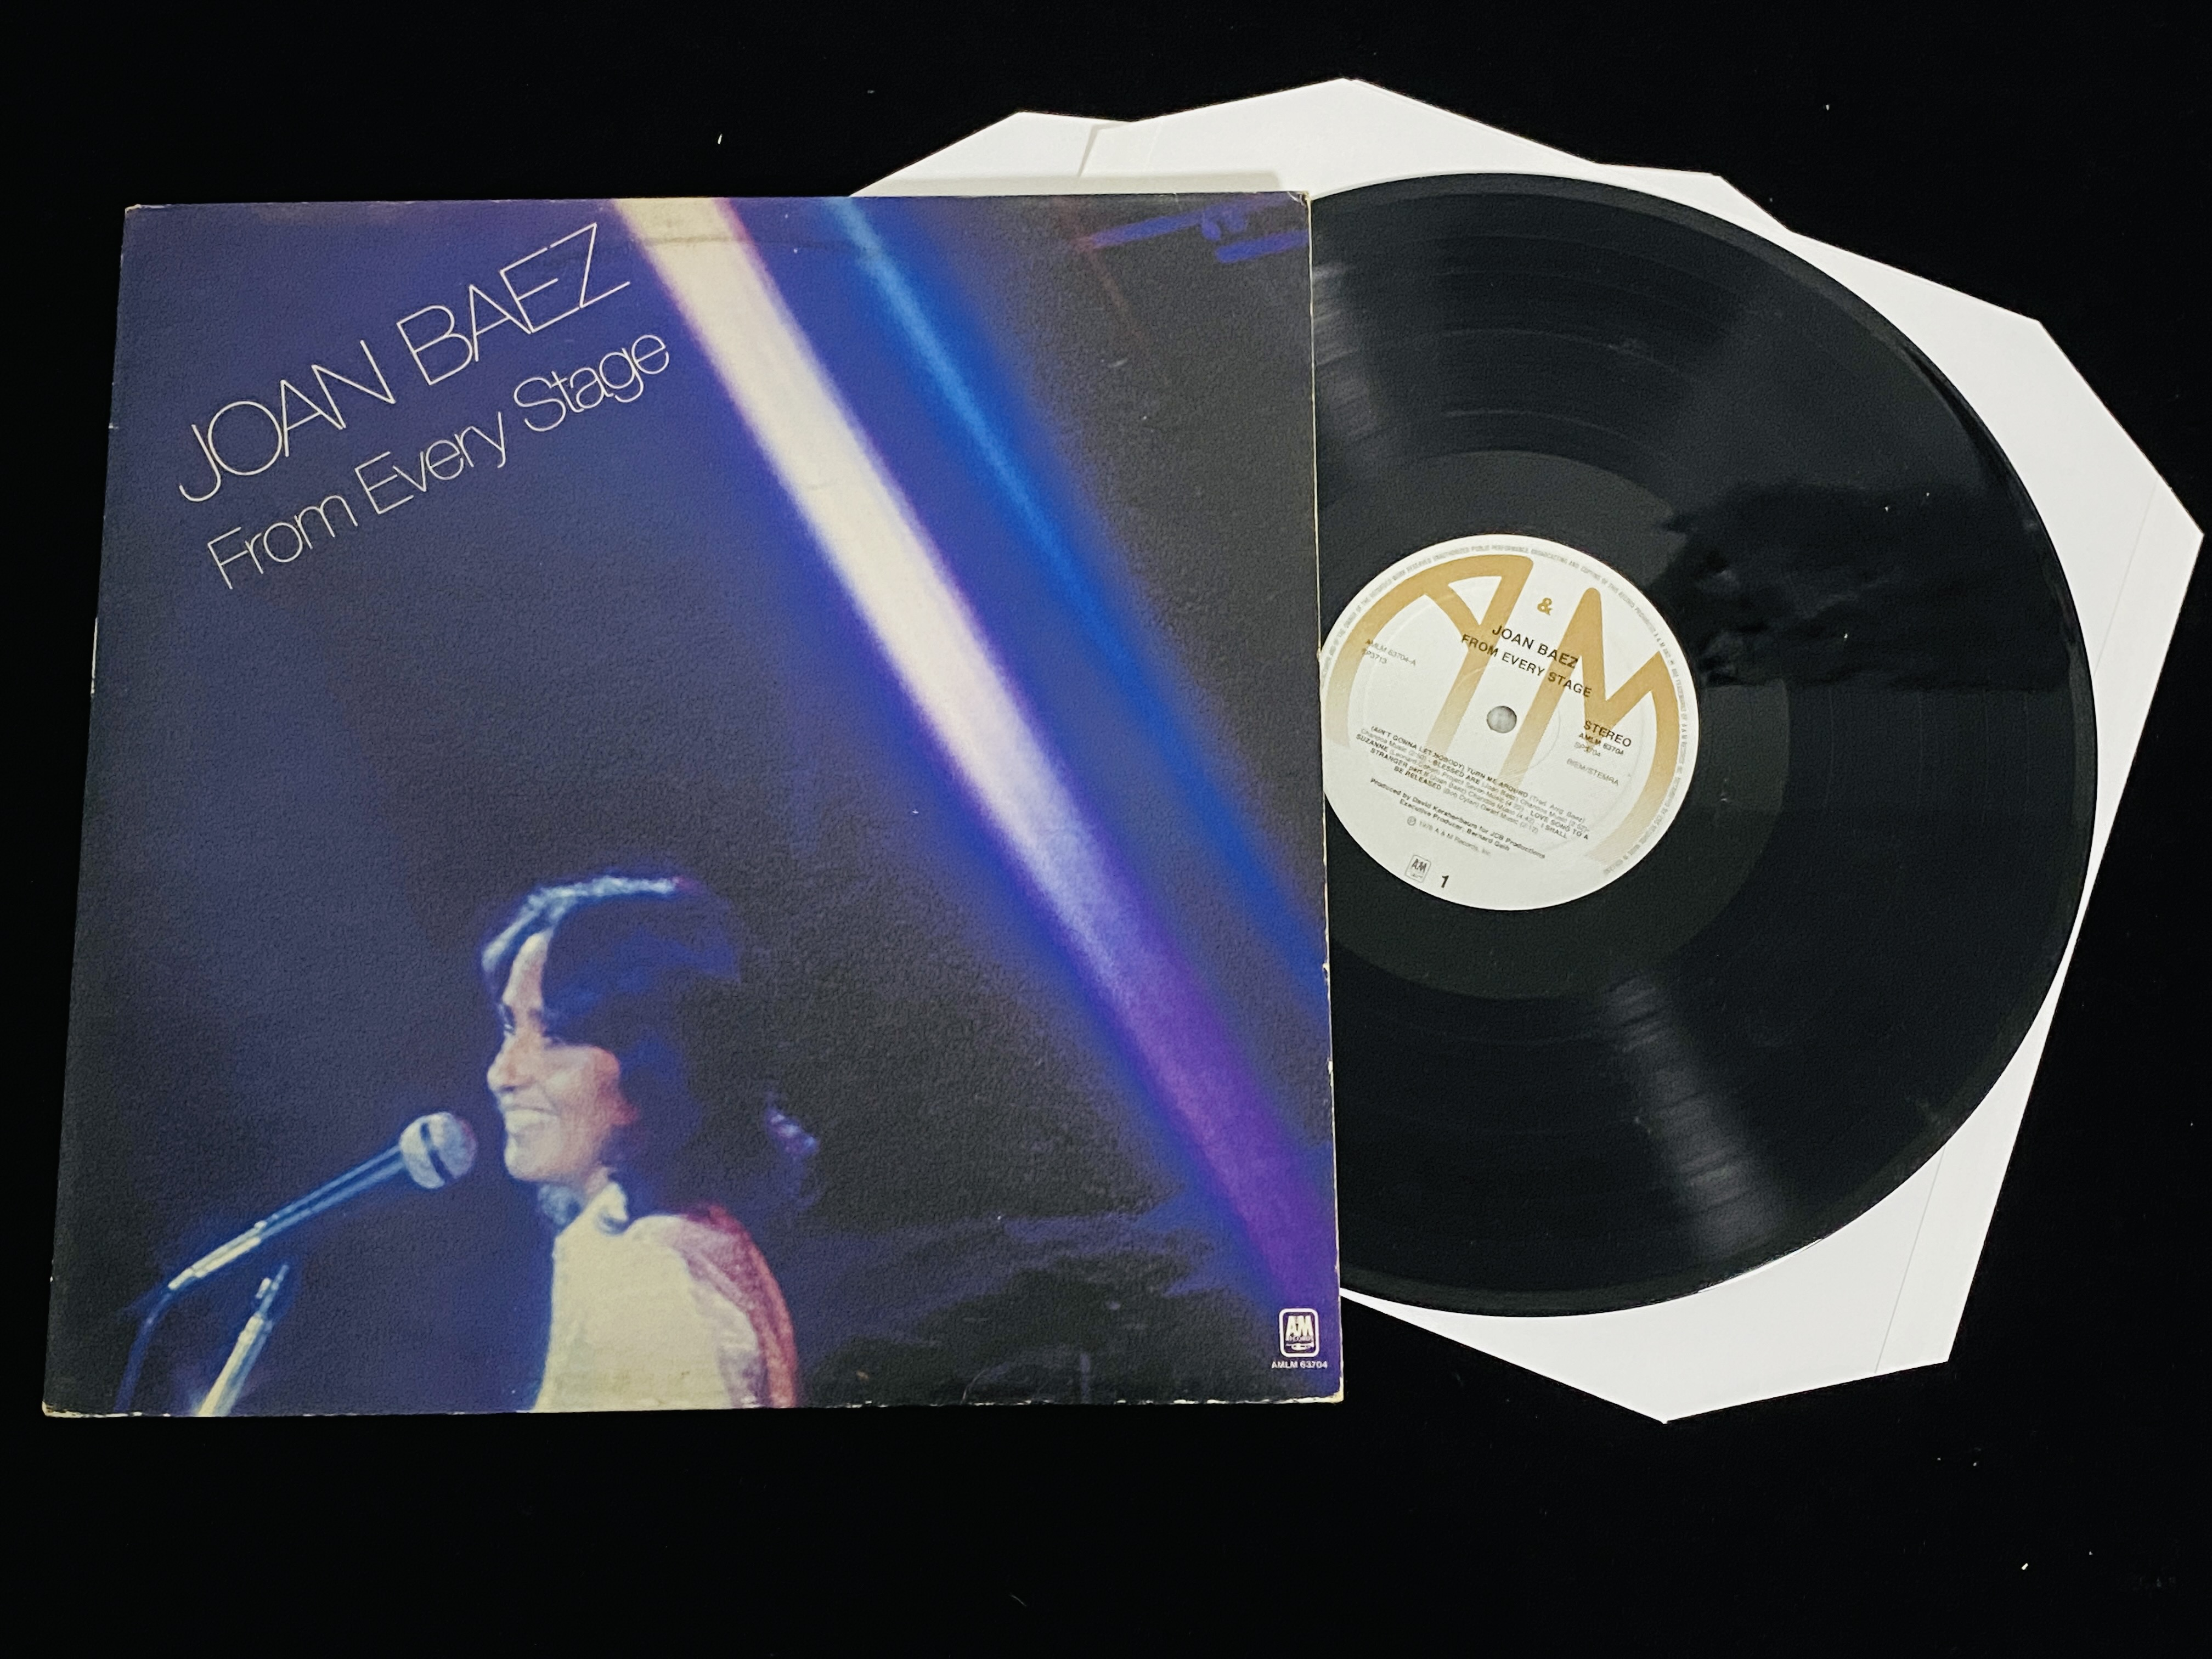 Joan Baez - From Every Stage (EU, 1976)